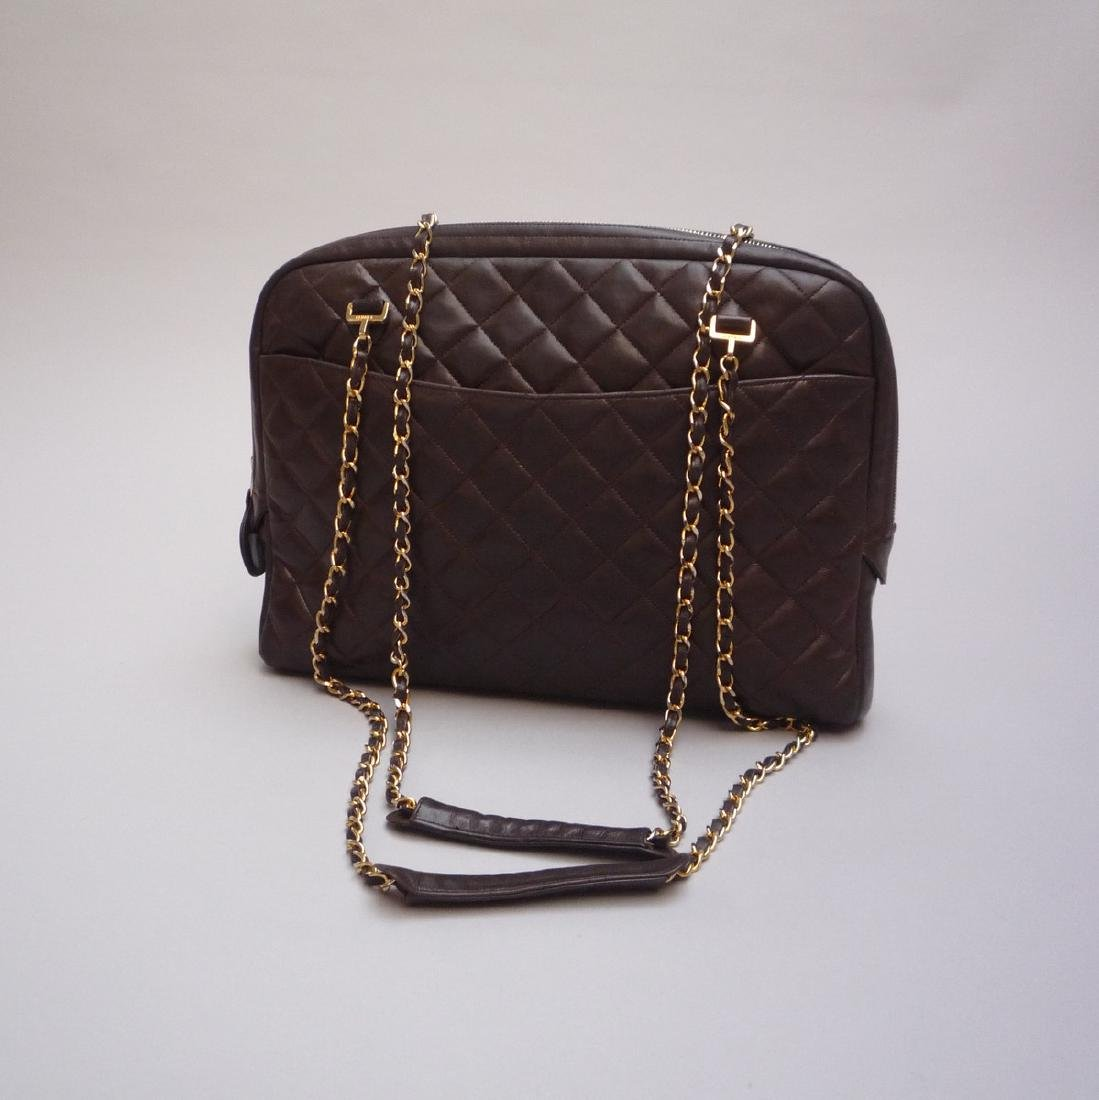 CHANEL  GRAND SAC en cuir matelassé chocolat - Double